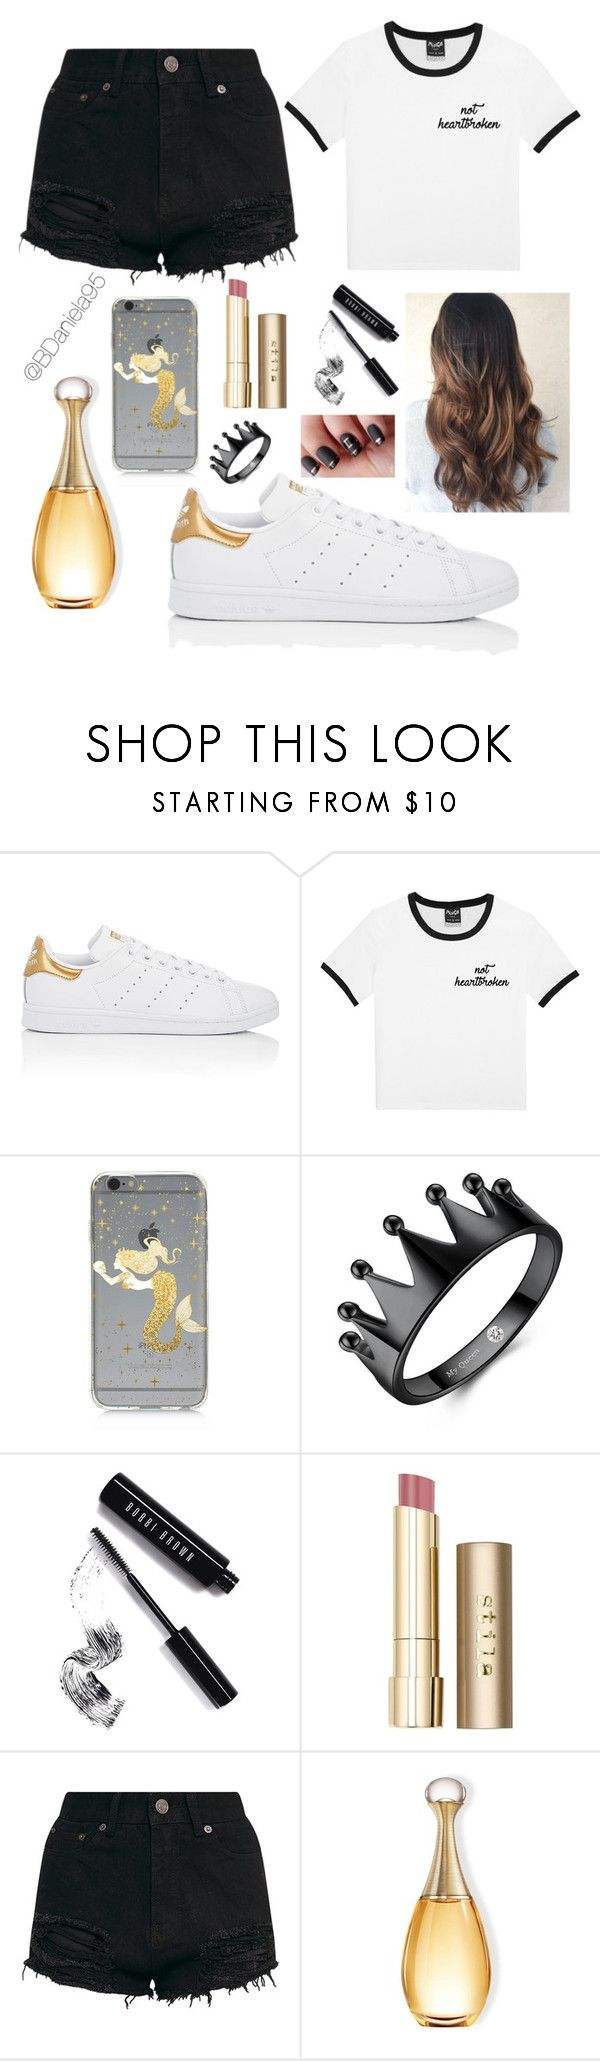 """Untitled #290"" by daniela95140 on Polyvore featuring adidas, Samsung, Bobbi Brown Cosmetics and Stila"